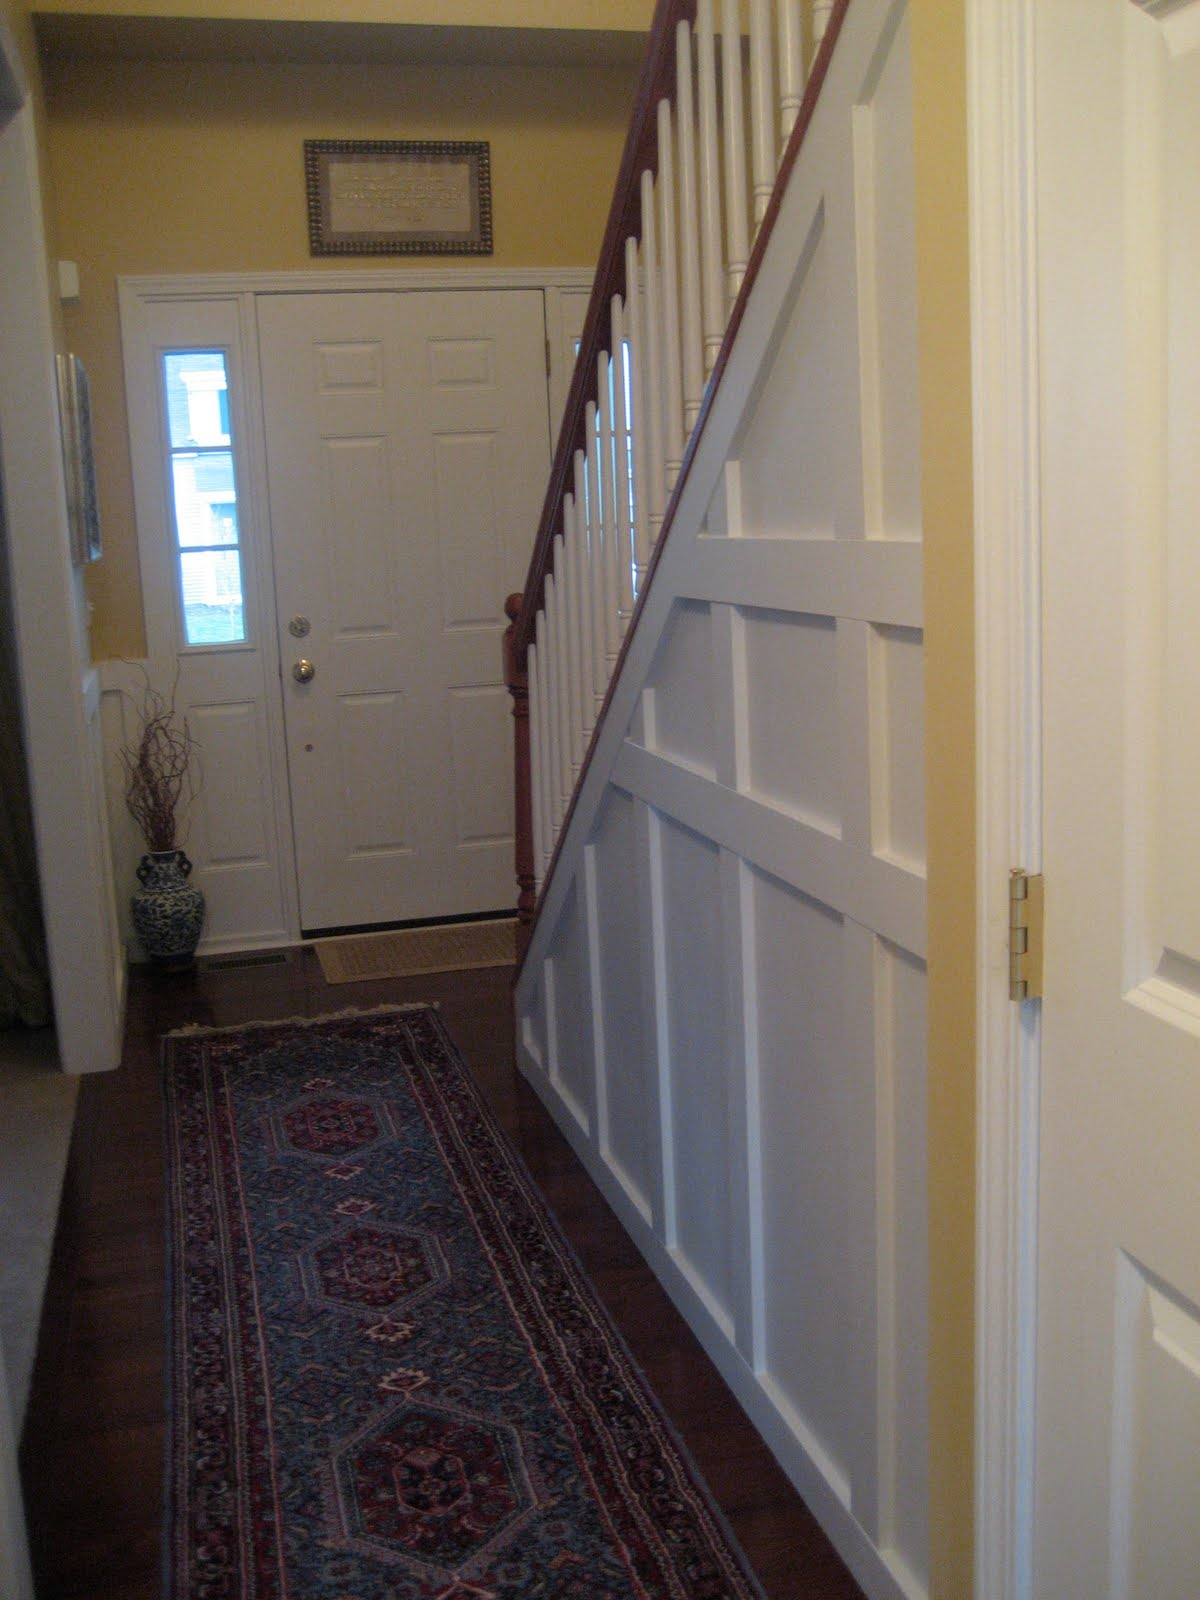 Wainscoting and picture frame molding diy show off diy wainscoting and picture frame molding diy show off diy decorating and home improvement blogdiy show off diy decorating and home improvement blog jeuxipadfo Images